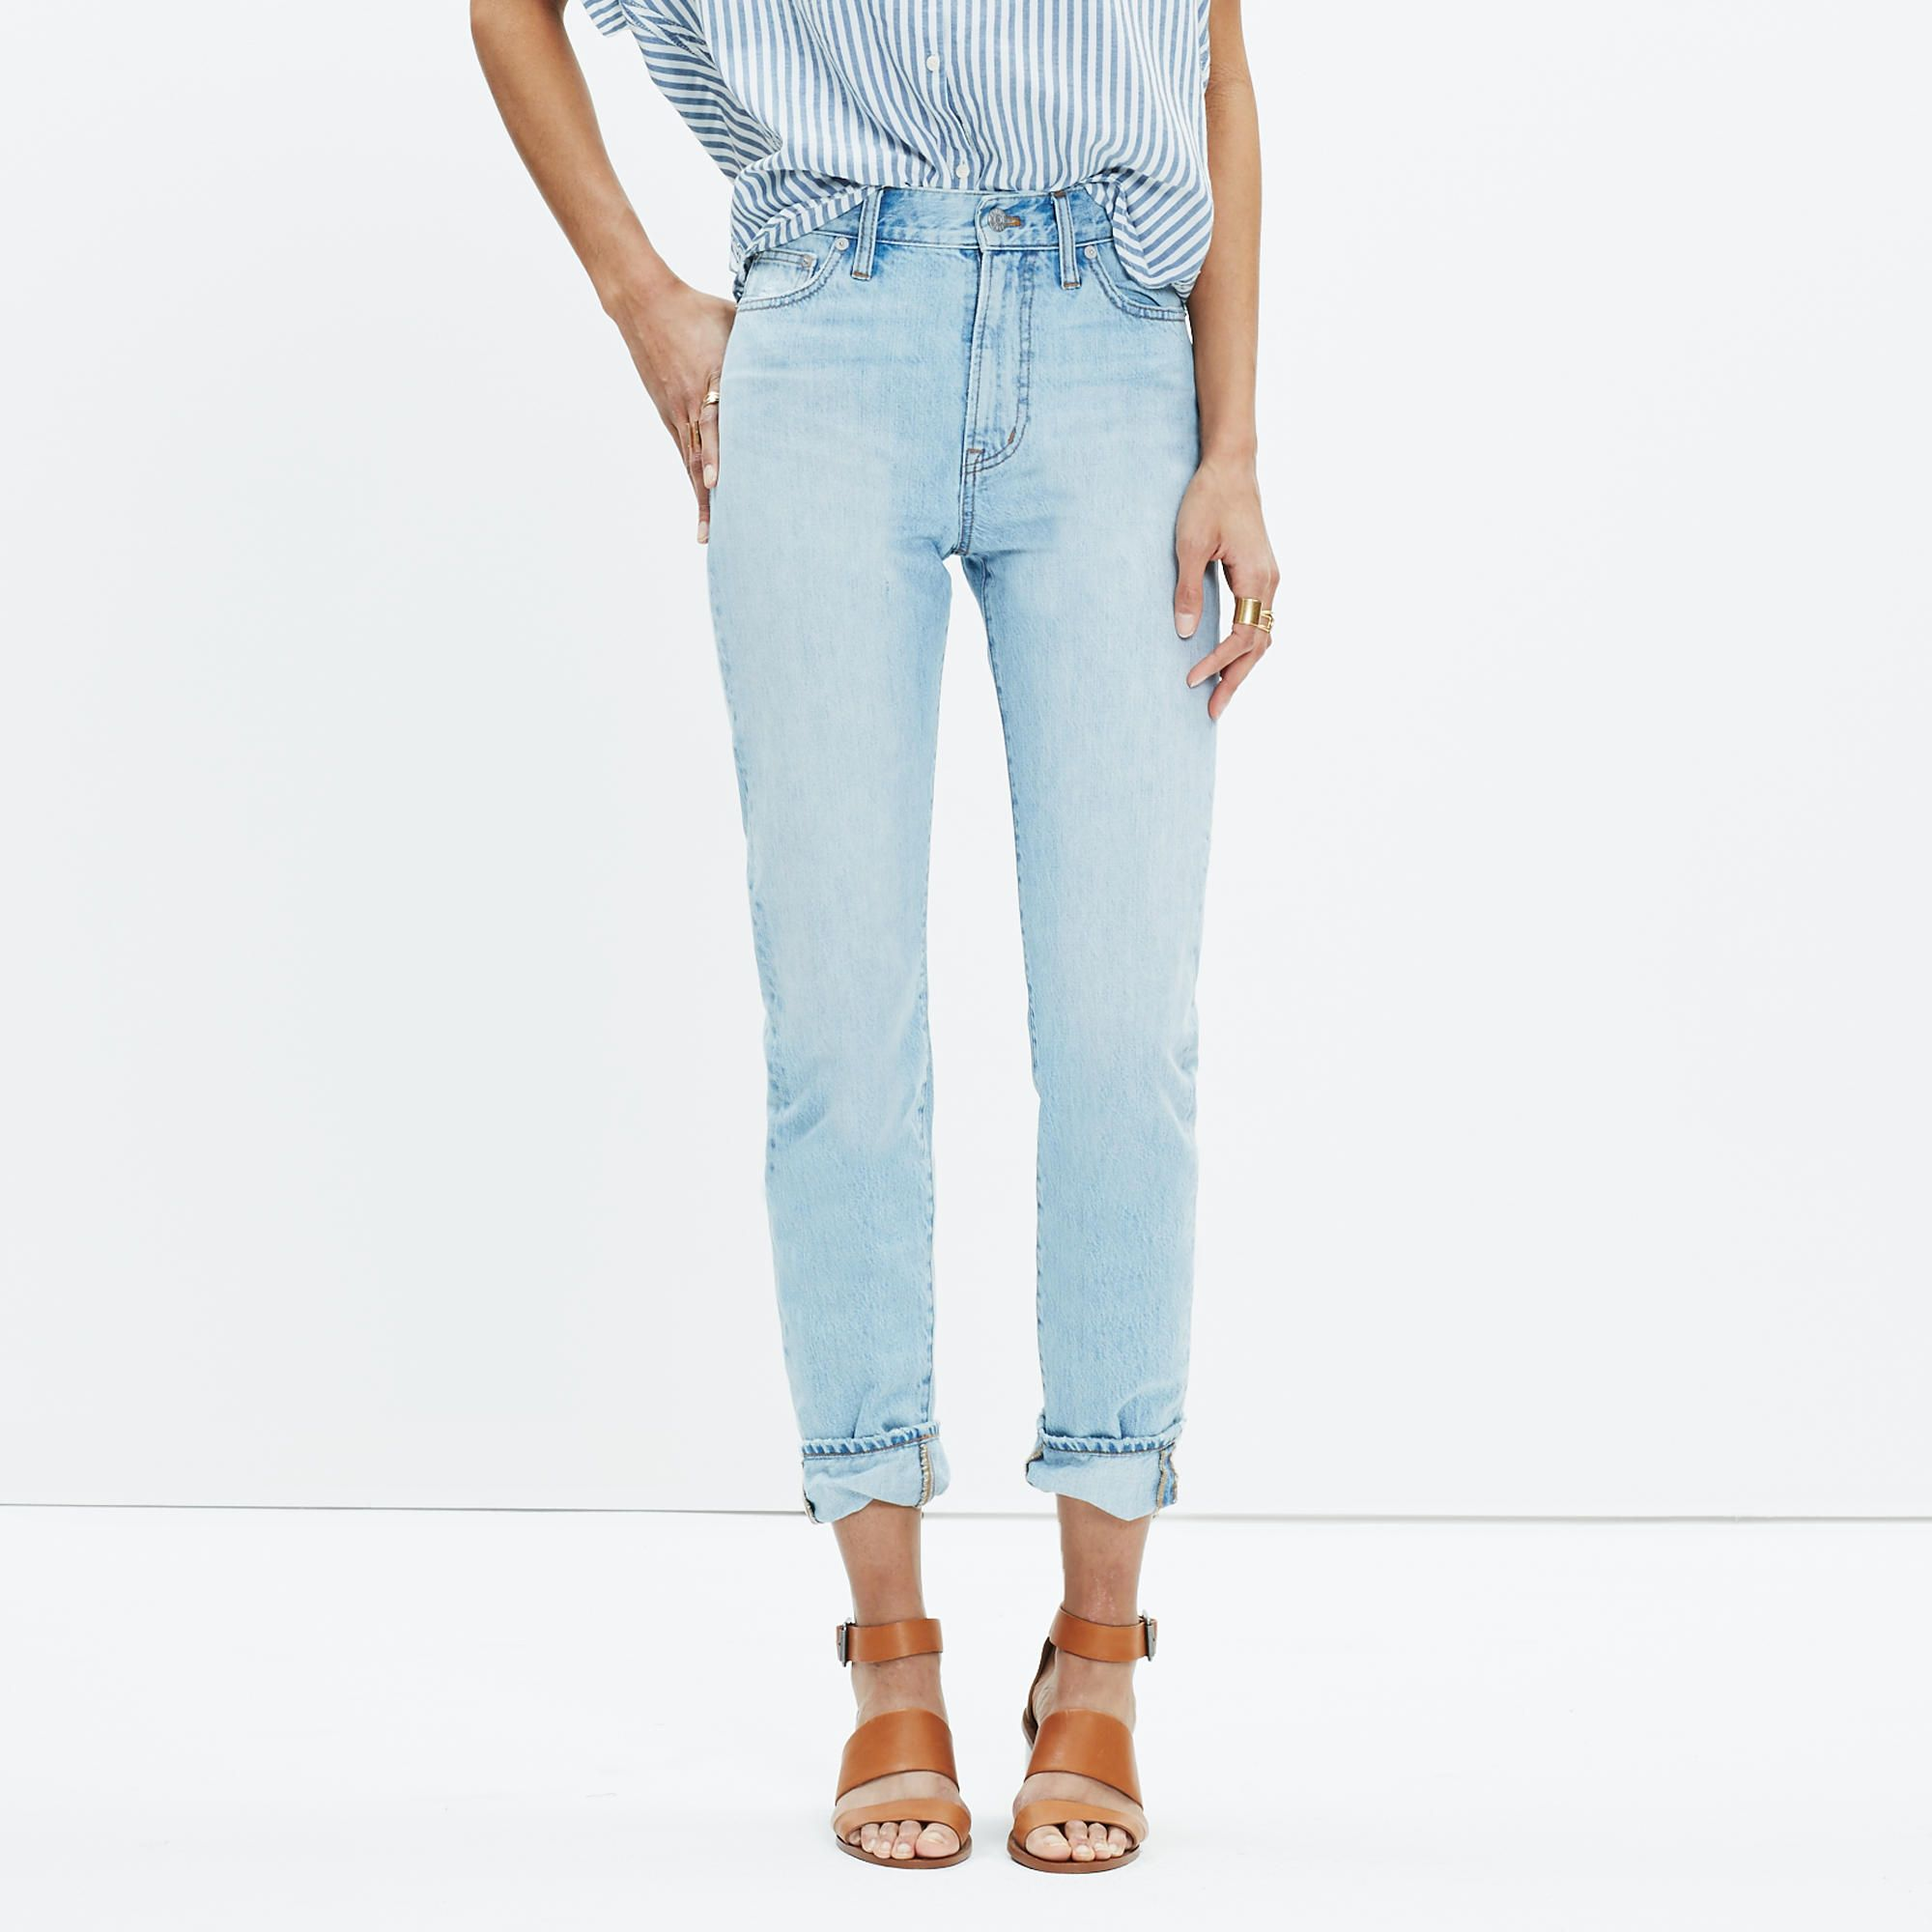 184b0297647 The Perfect Summer Jean in Fitzgerald Wash   crop